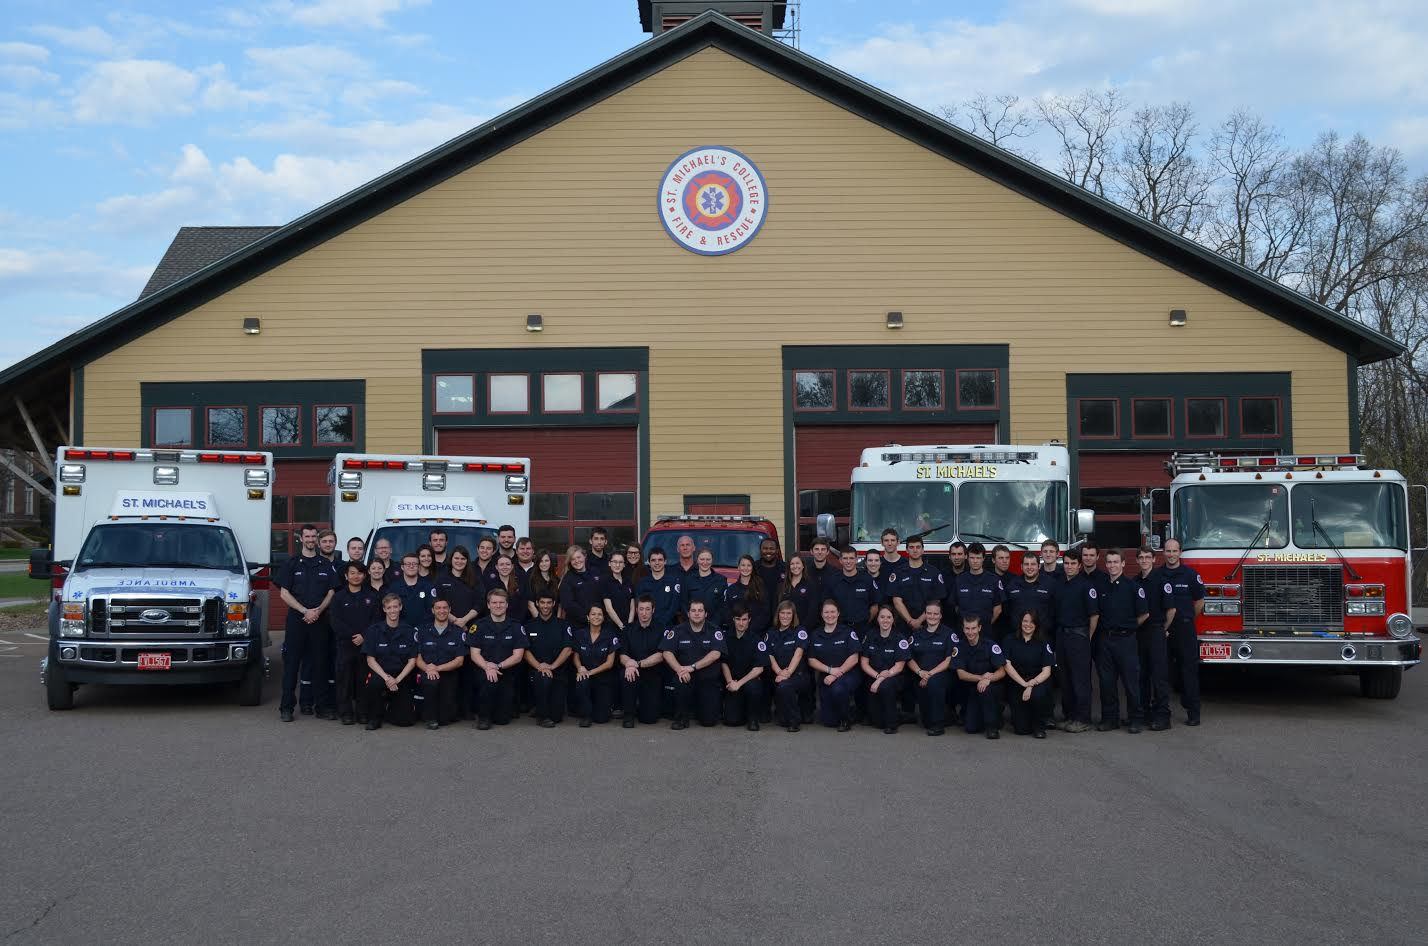 saint michael u2019s college fire and rescue  vt  switches from